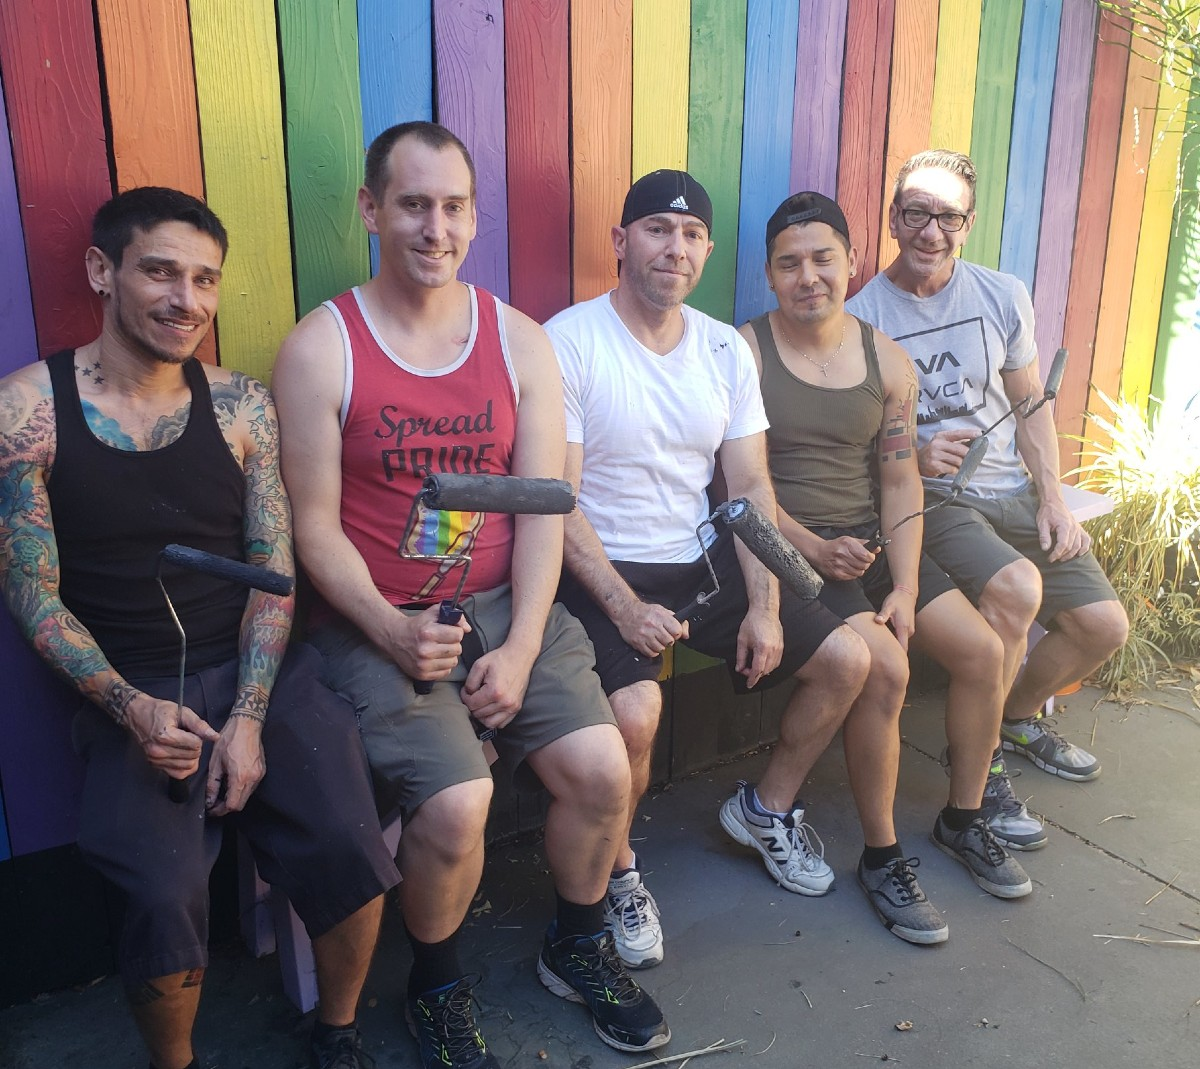 Repainting the rainbow fence at C Fenz last summer